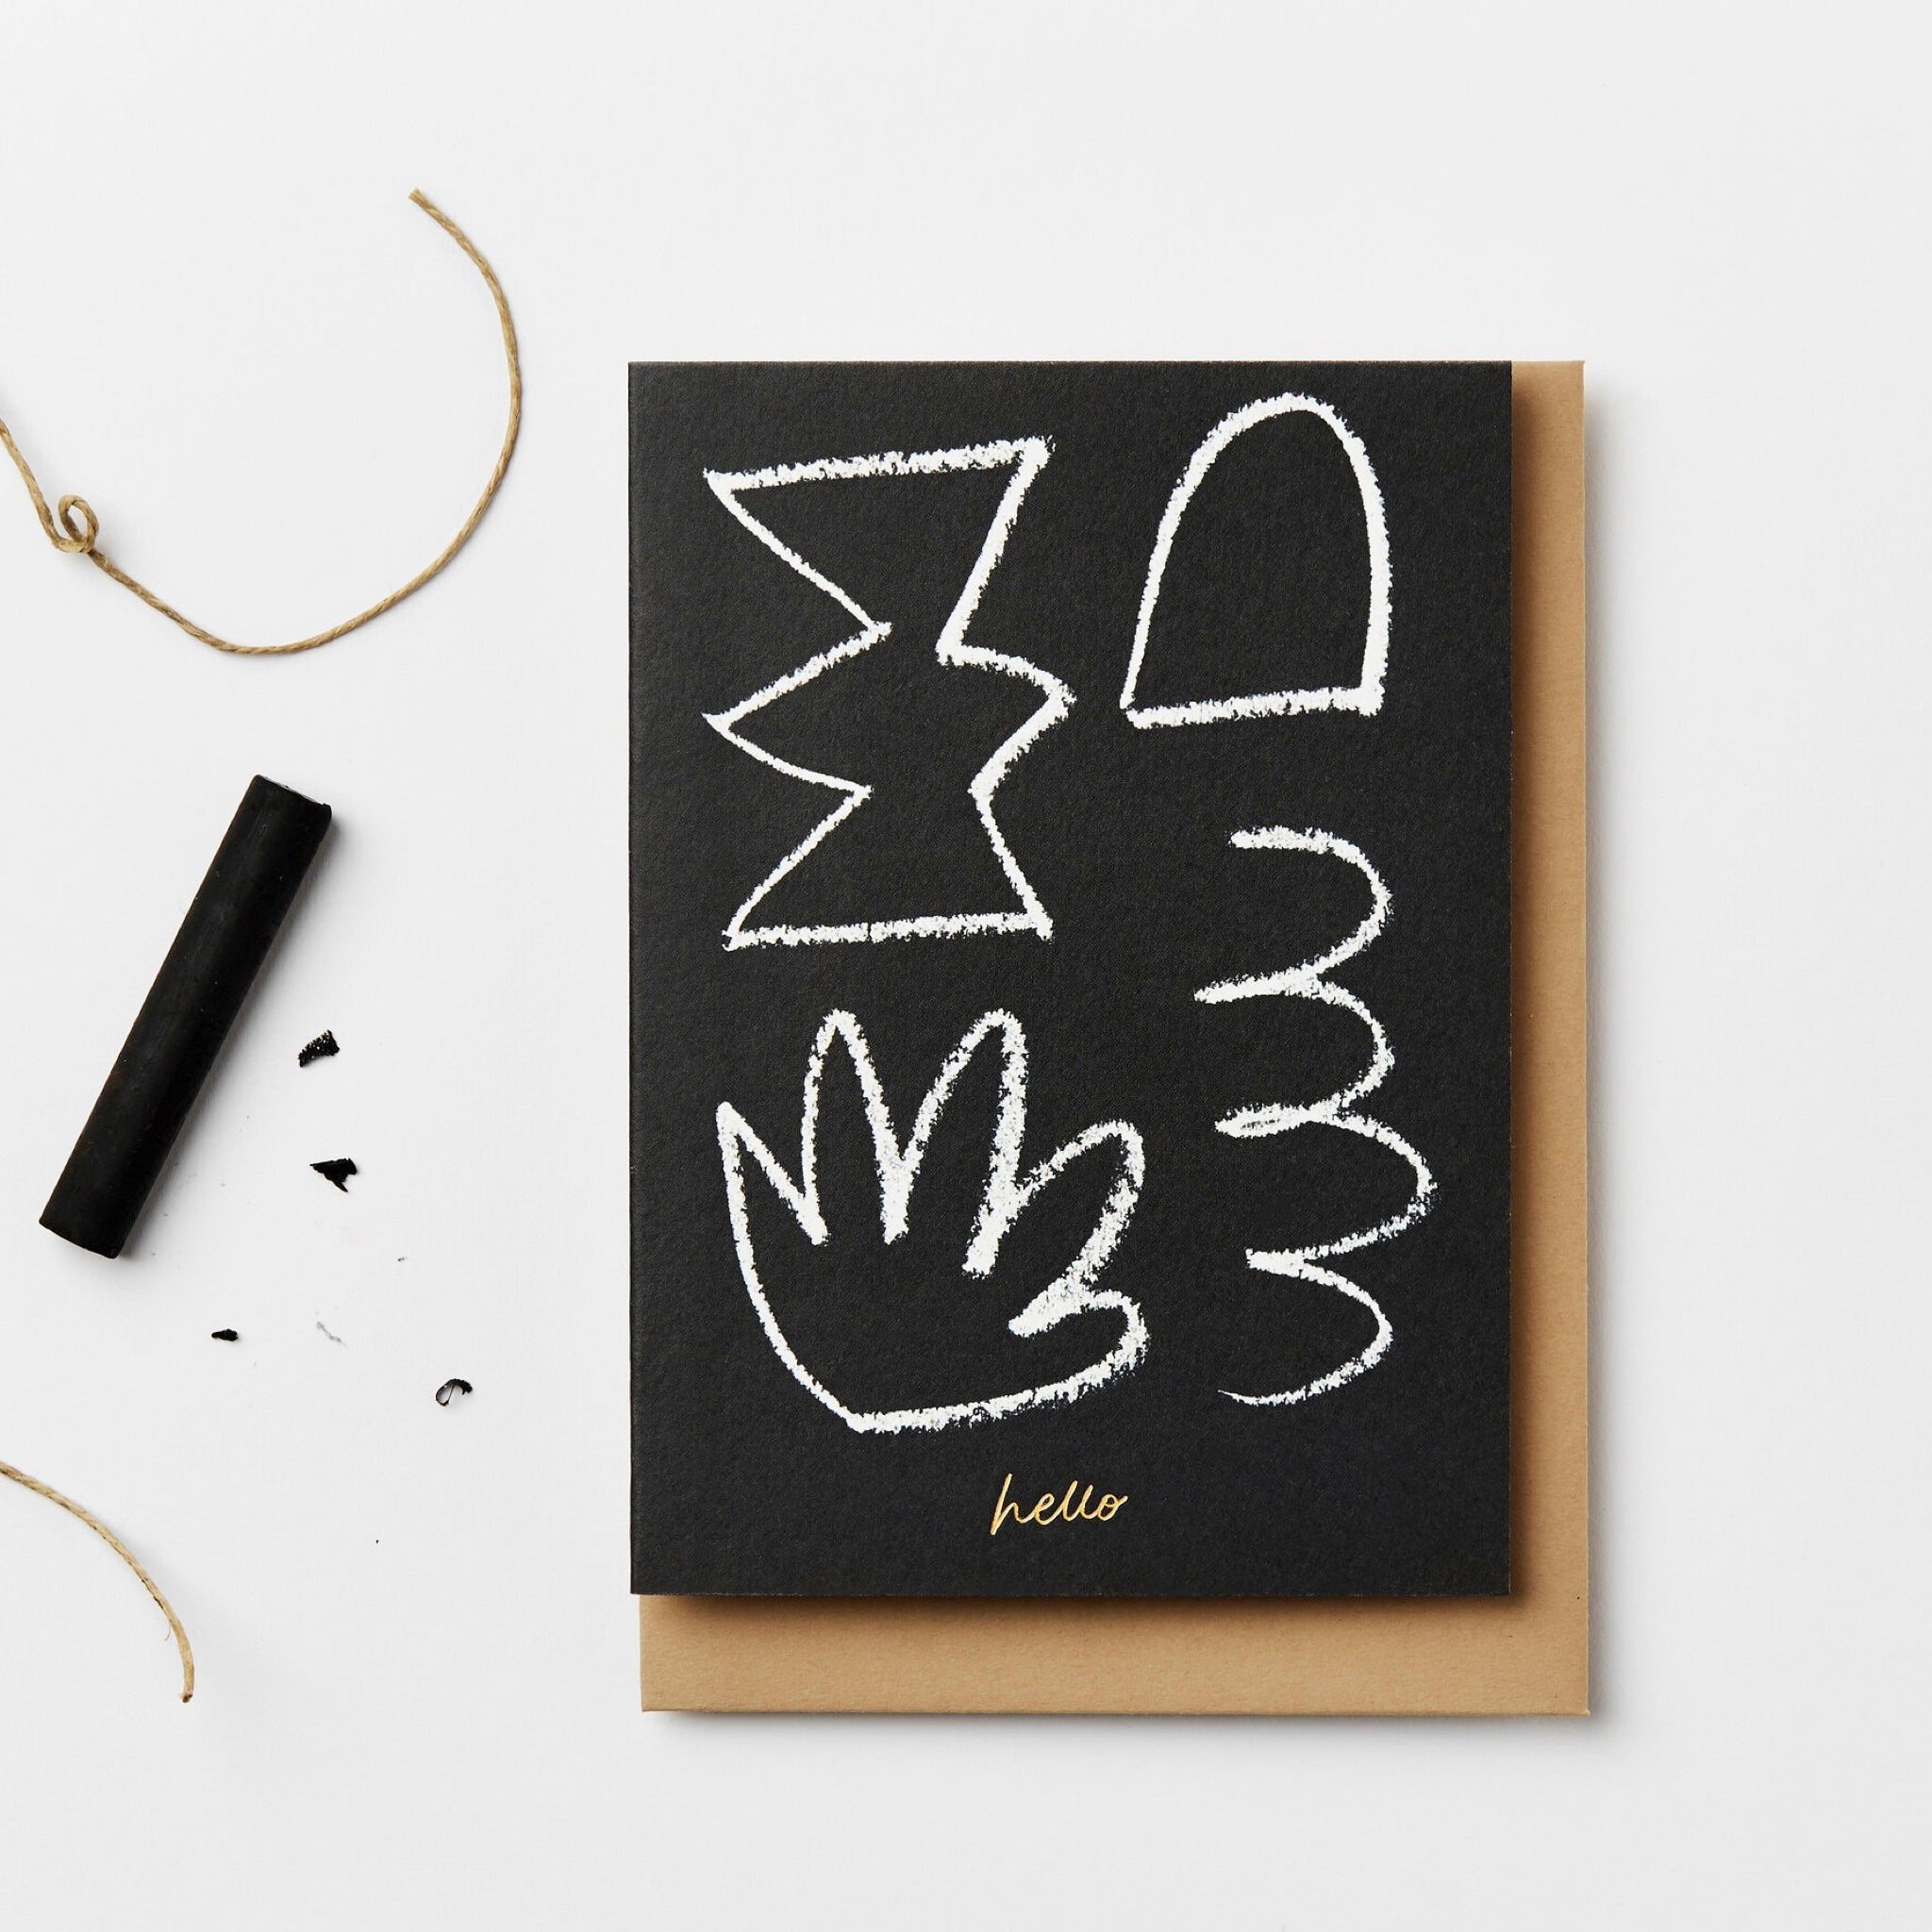 Kinshipped x AEAND 'Hello' Card in Black